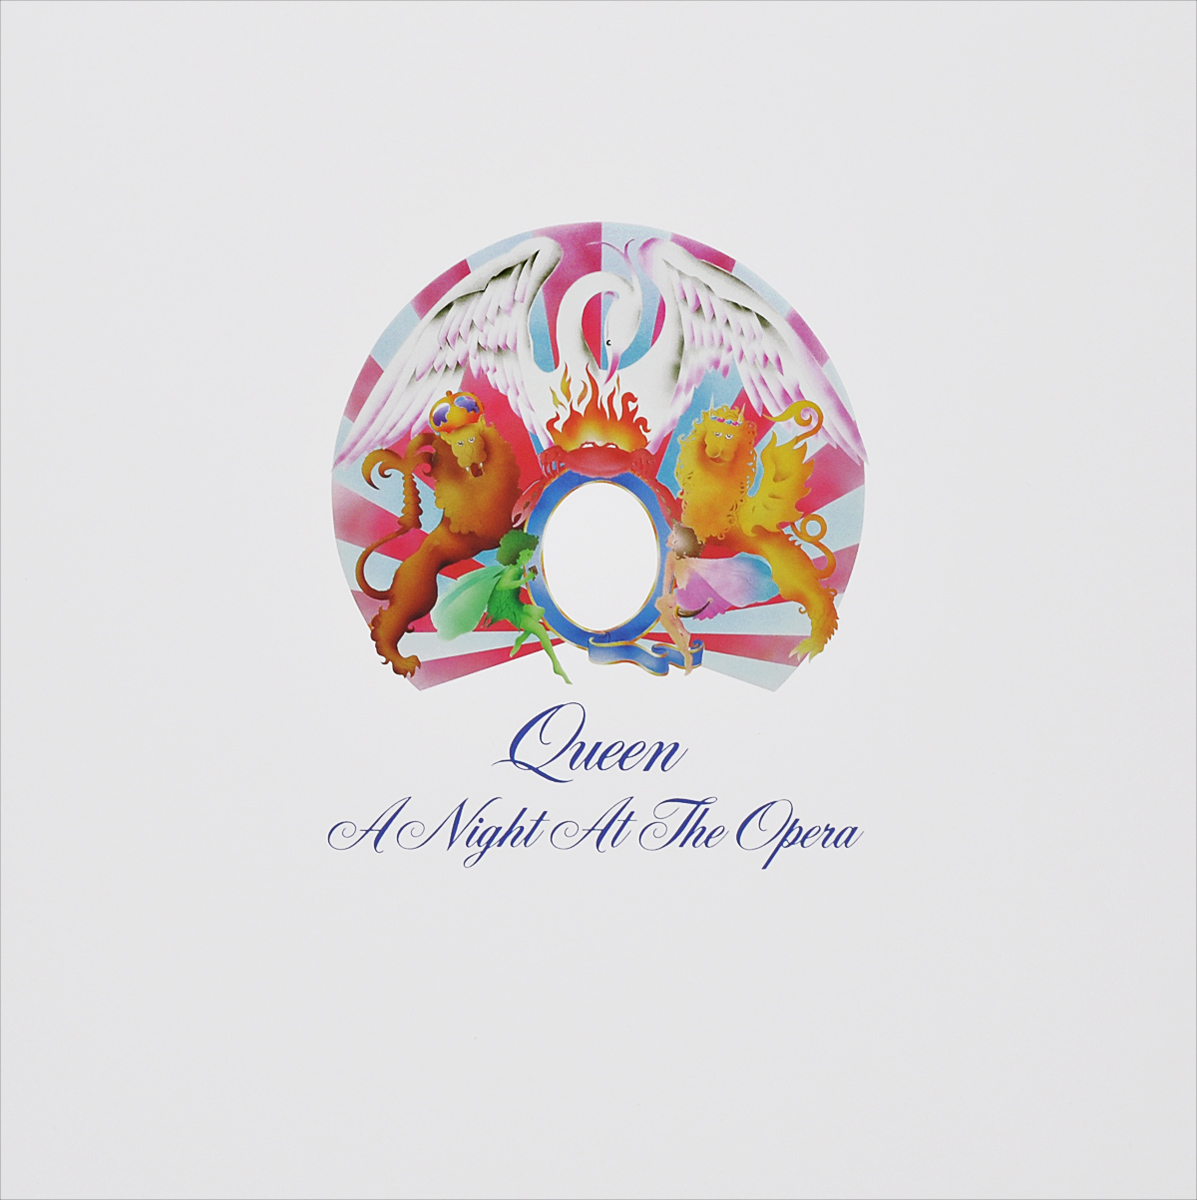 Queen Queen. A Night At The Opera (LP) harish nautiyal environment at a glance